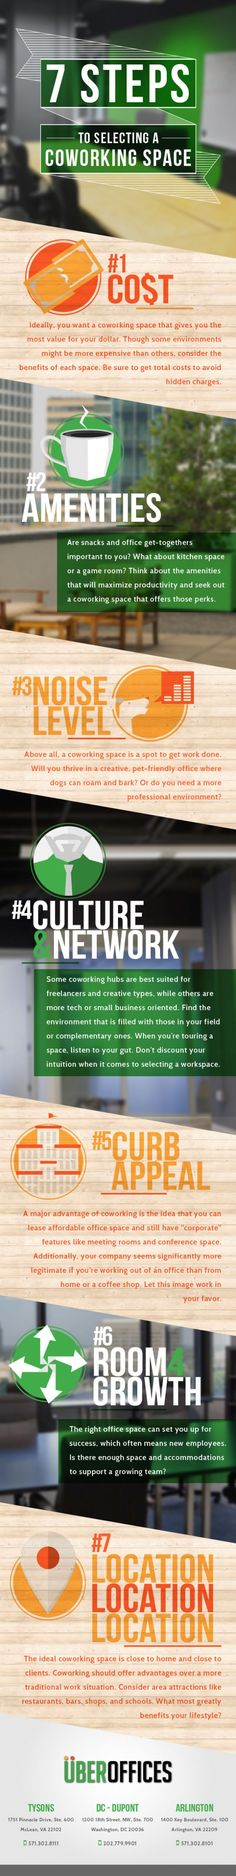 7 step guide on selecting a coworking space #infographic